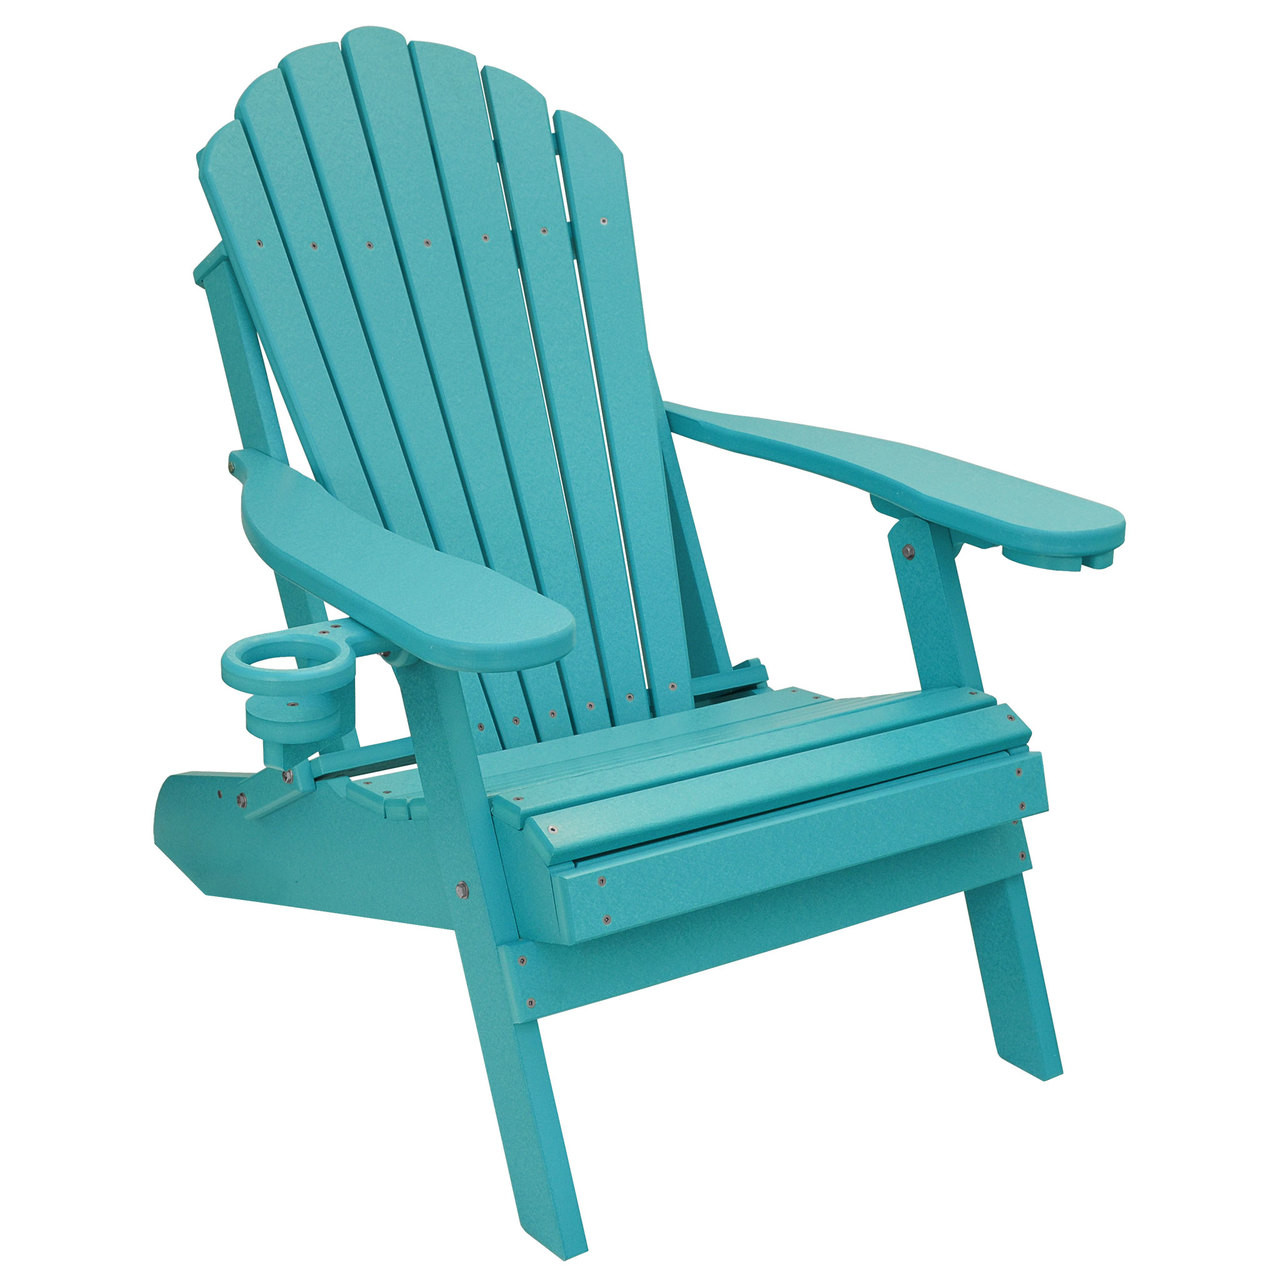 Outer Banks Deluxe Oversized Poly Lumber Folding Adirondack Chair with Cup Holder - Aruba Blue  sc 1 st  ECCB Outdoor & Deluxe Oversized Poly Lumber Folding Adirondack Chair with Cup Holders